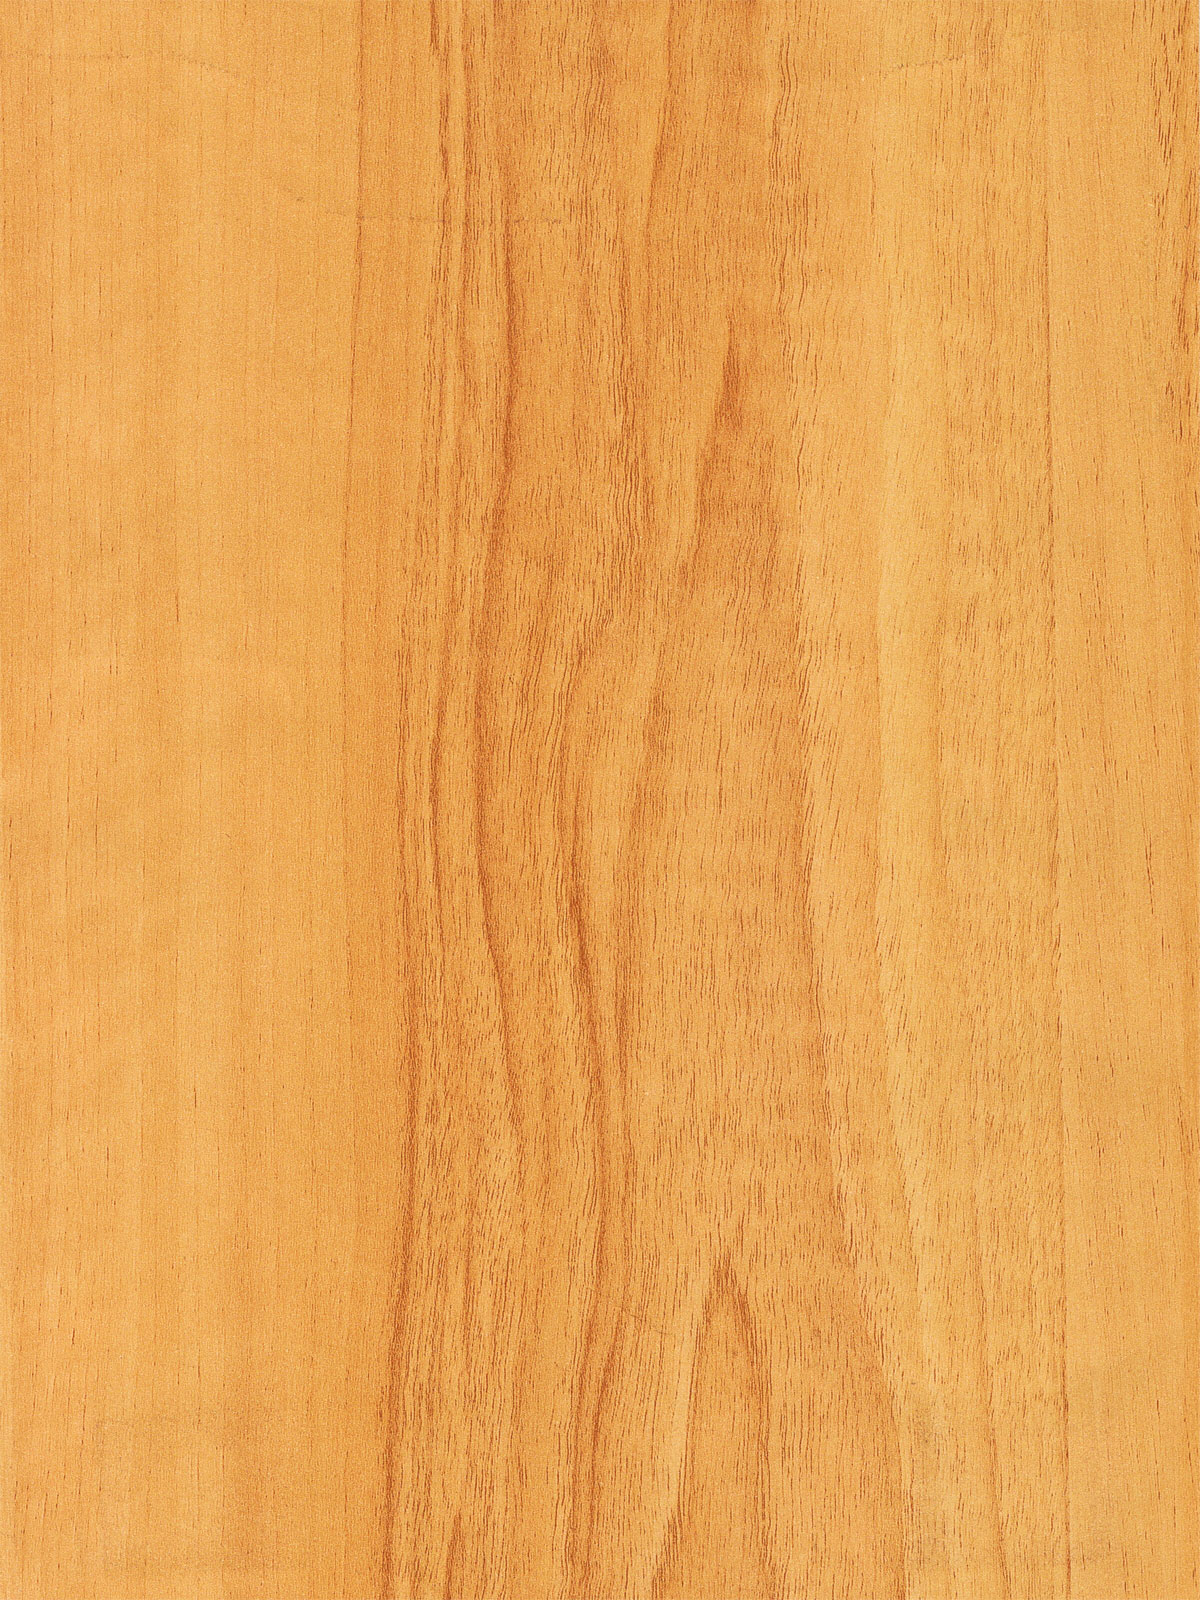 Laminate flooring colors shaw laminate flooring 5 colors for Shades of laminate flooring